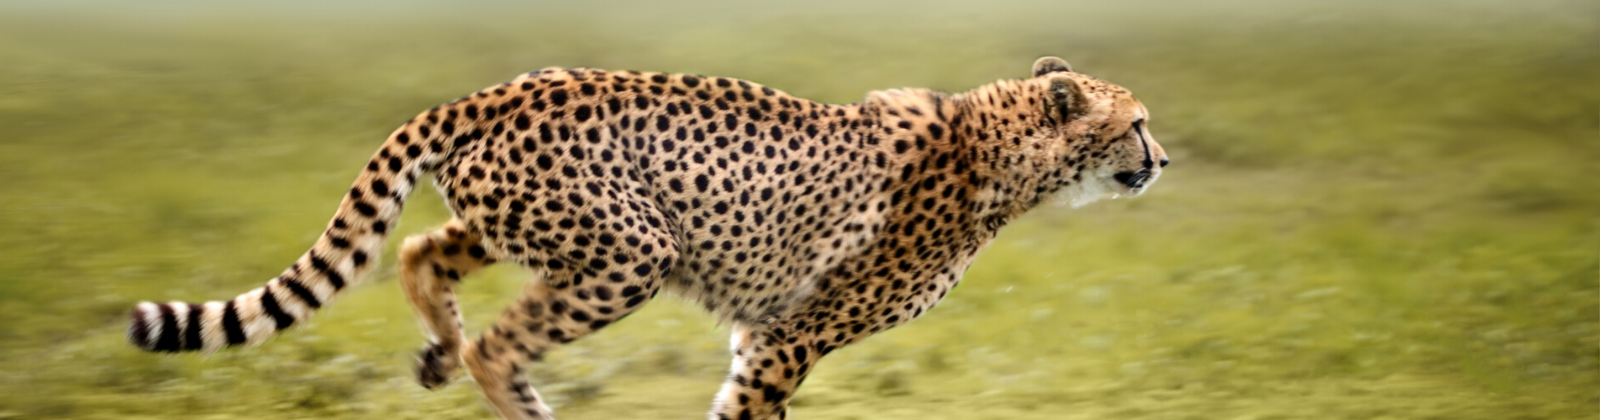 a cheetah running